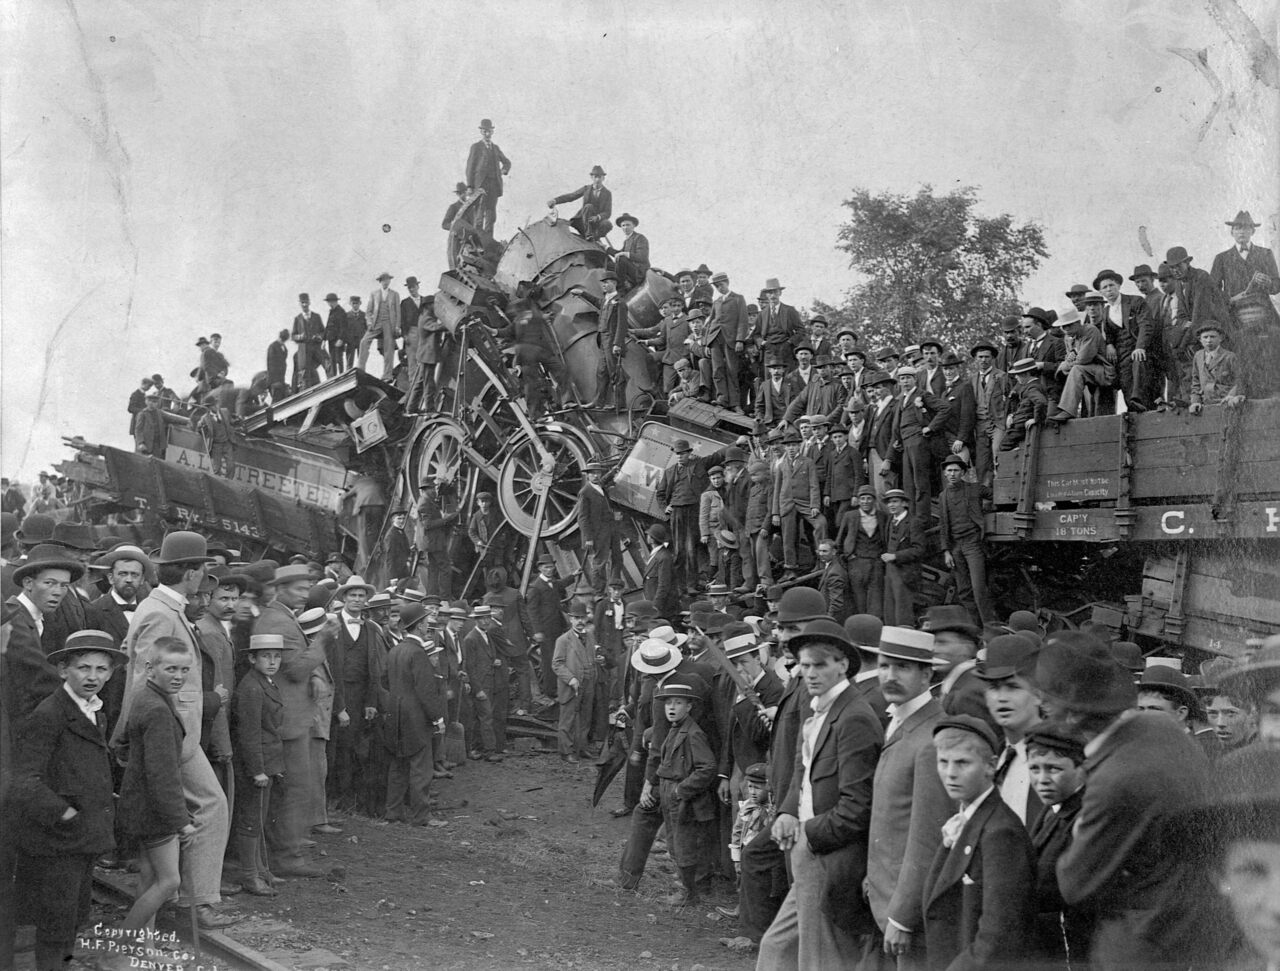 For 40 Years, Crashing Trains Was One of America's Favorite Pastimes